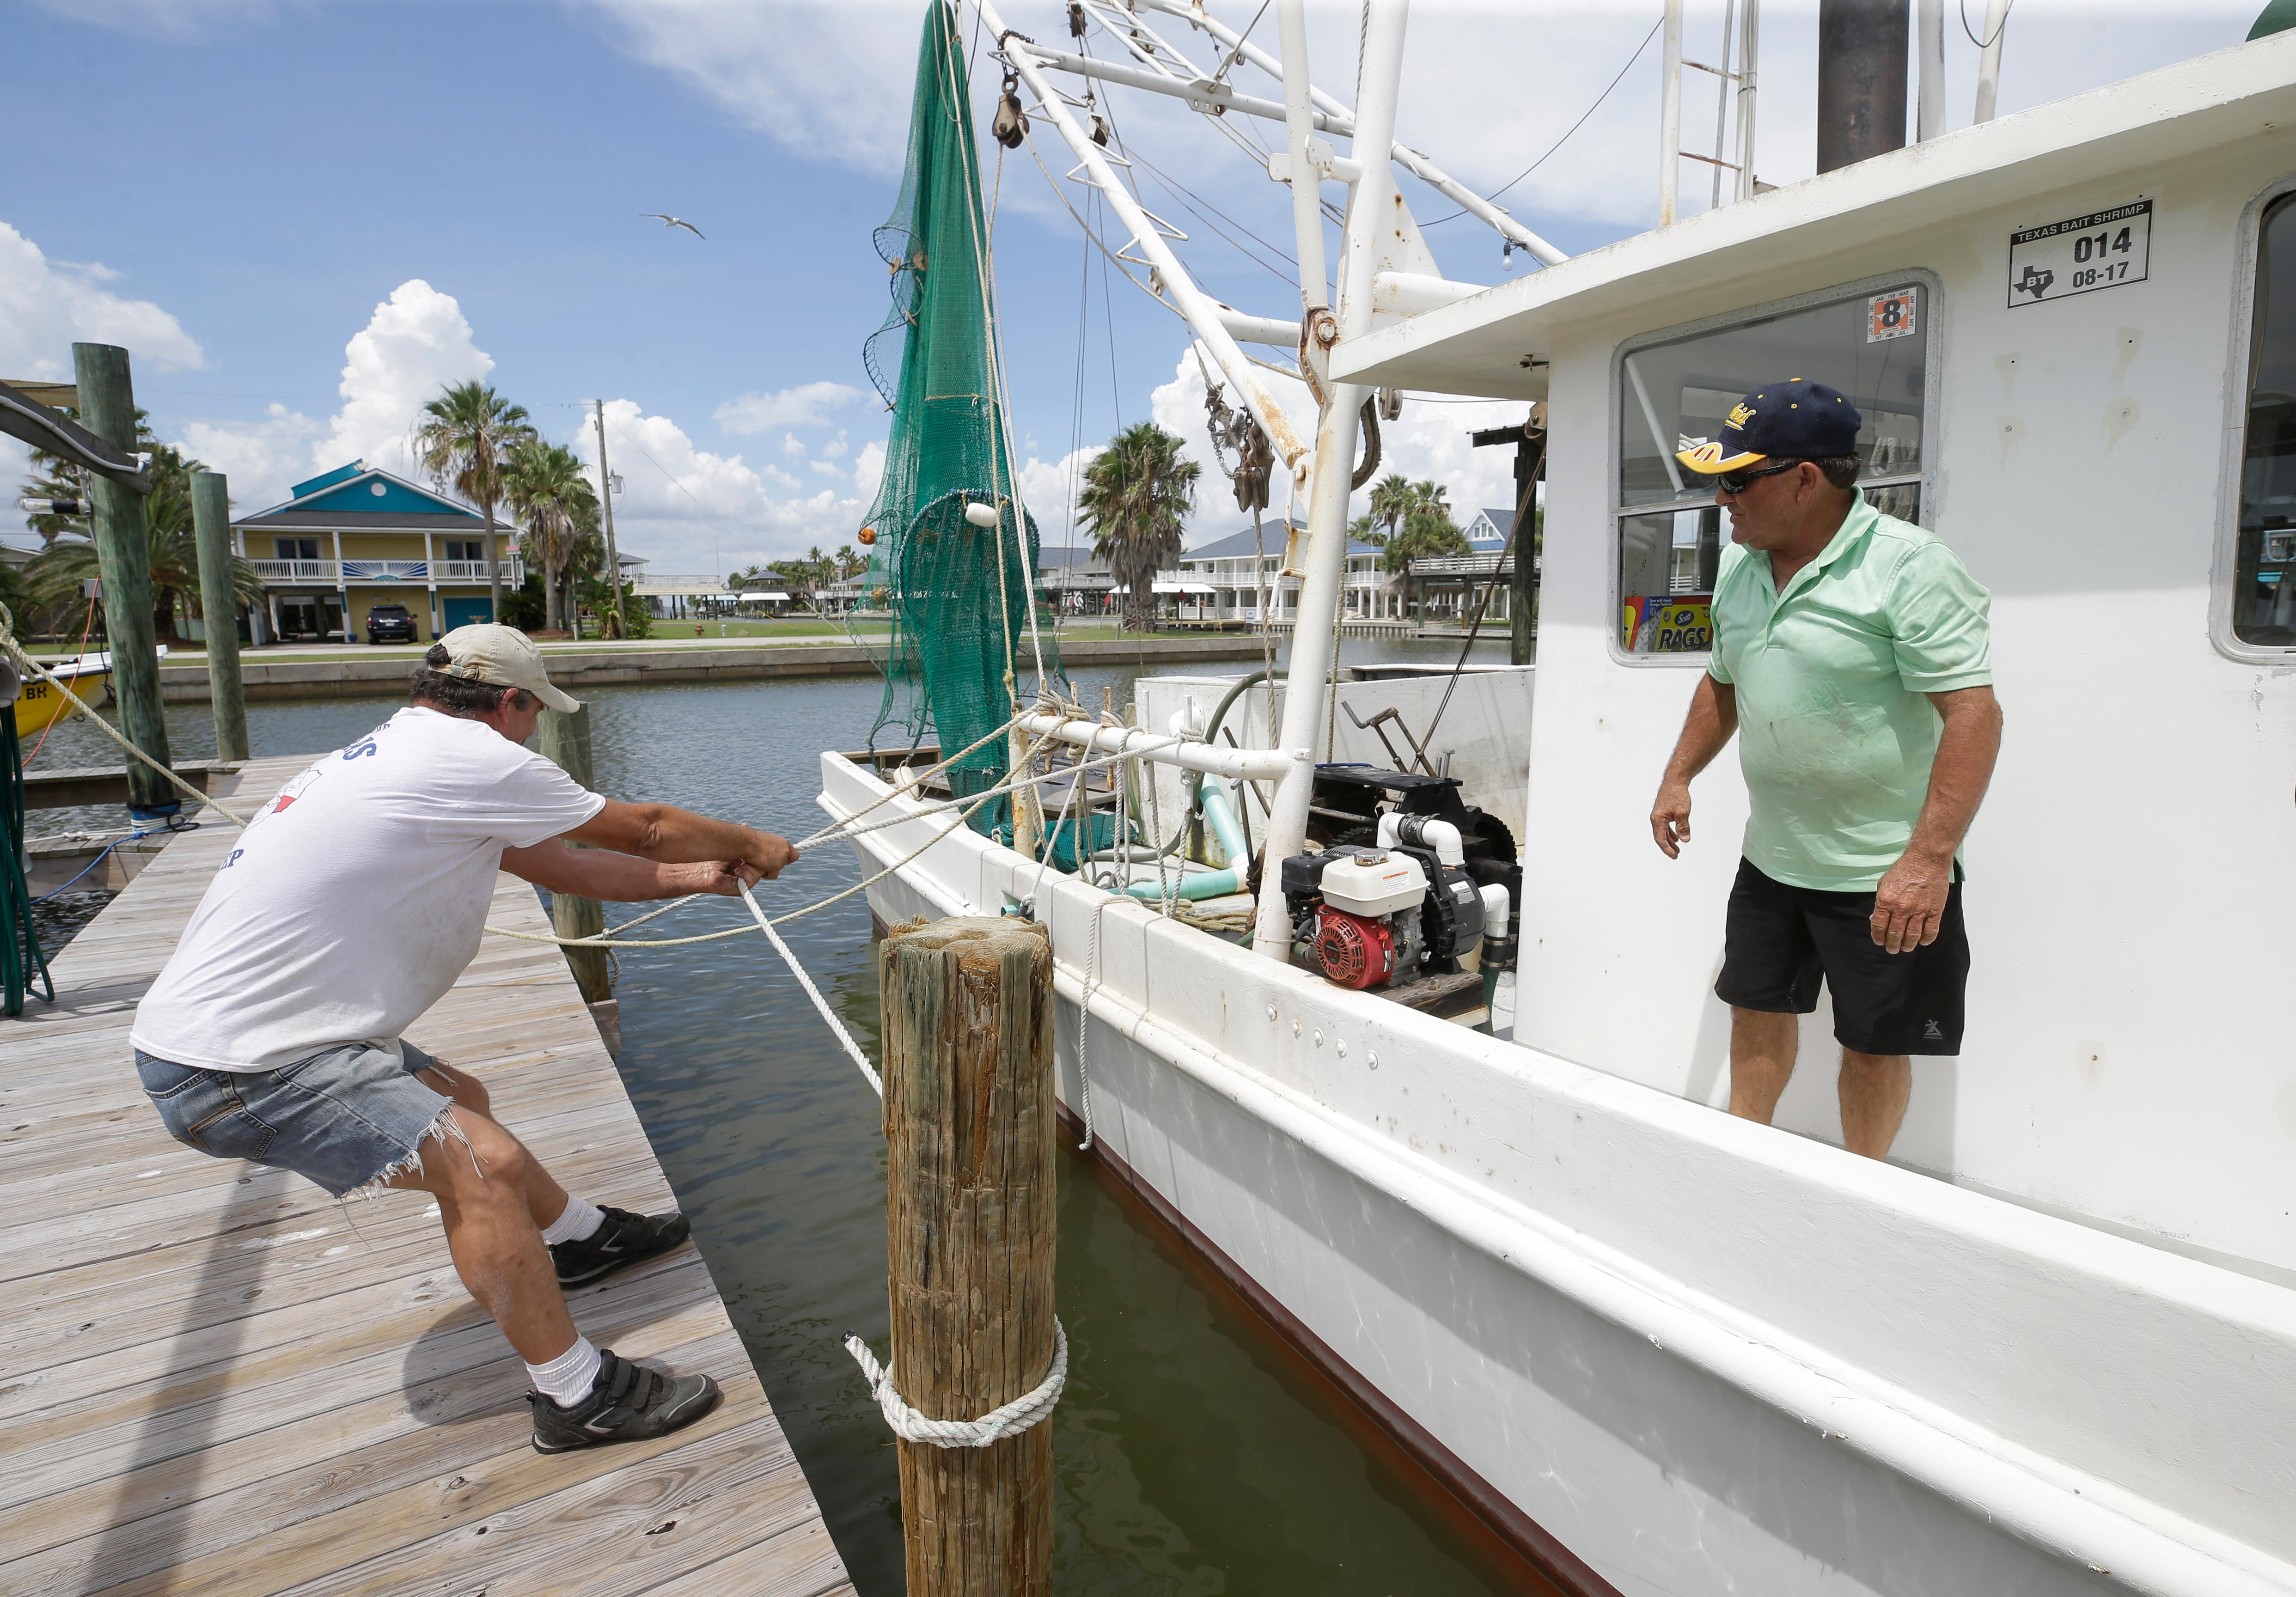 Steve Elliott, left, and David Prater, right, secure a 40-foot shrimp boat at West End Marina, Thursday, Aug. 24, 2017, in Galveston, Texas, as people prepare for Hurricane Harvey. (Melissa Phillip/Houston Chronicle via AP)